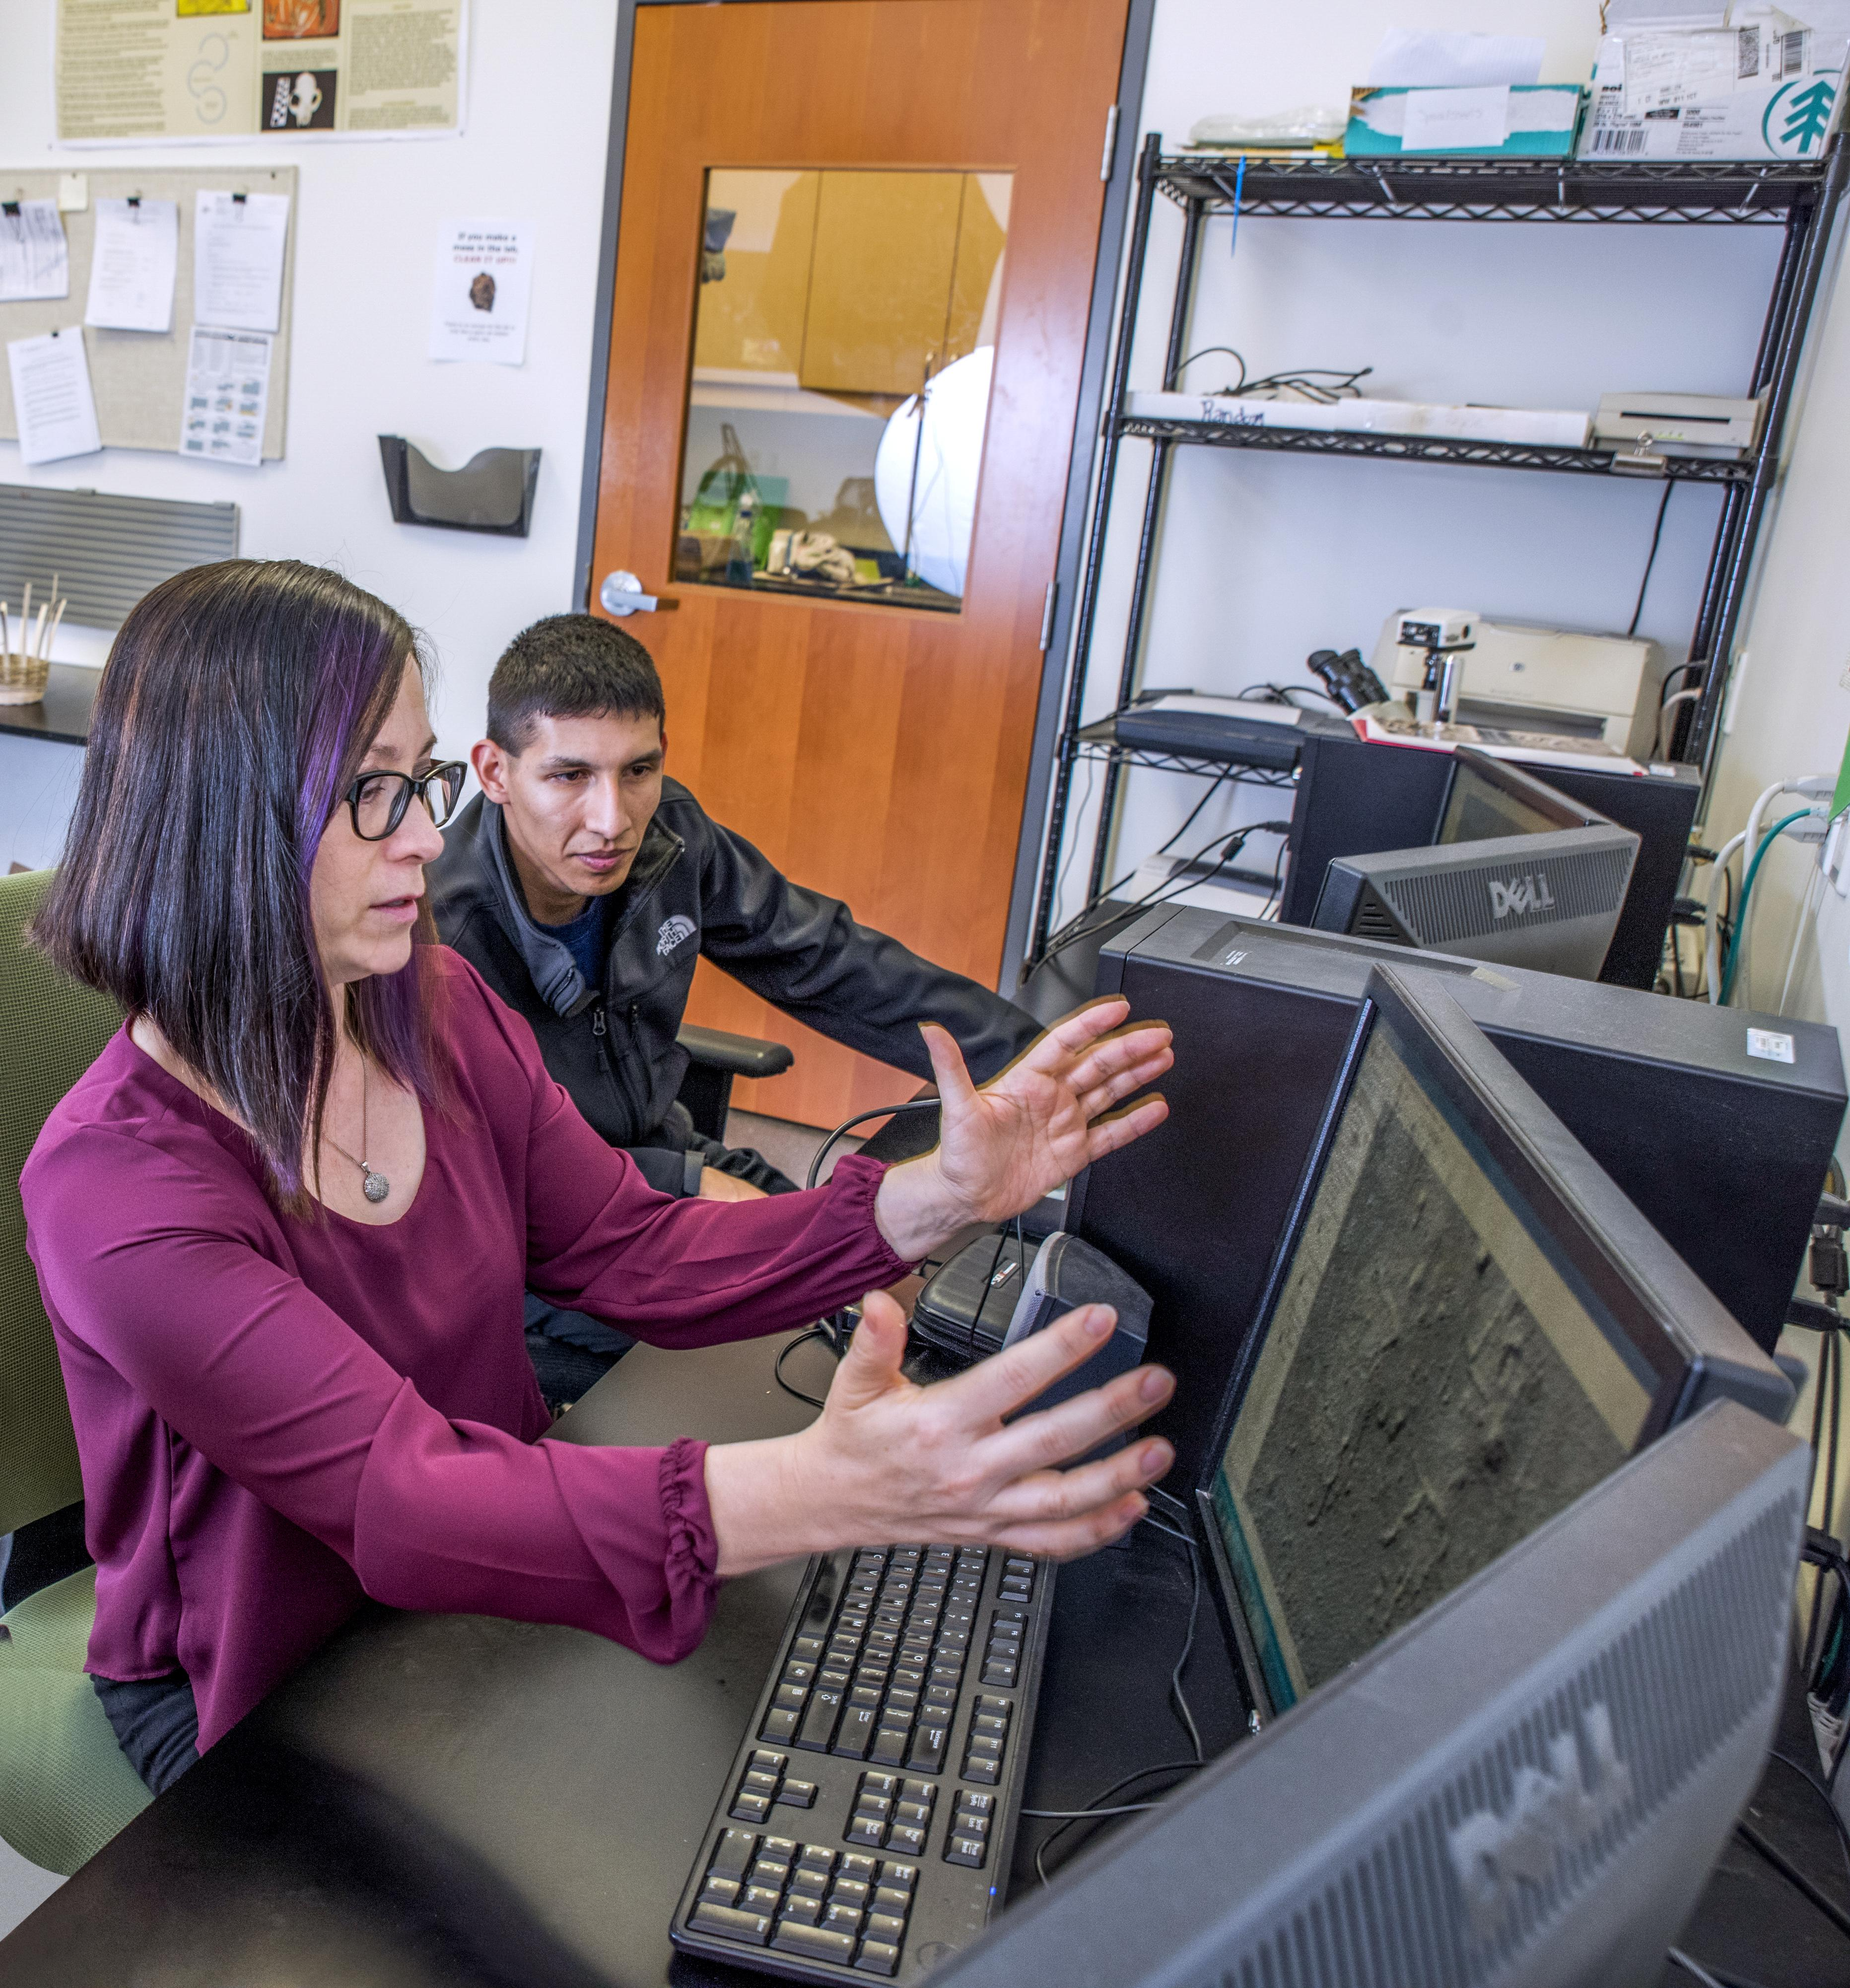 Dr. Marisol Cortes-Rincon working with a student at computer